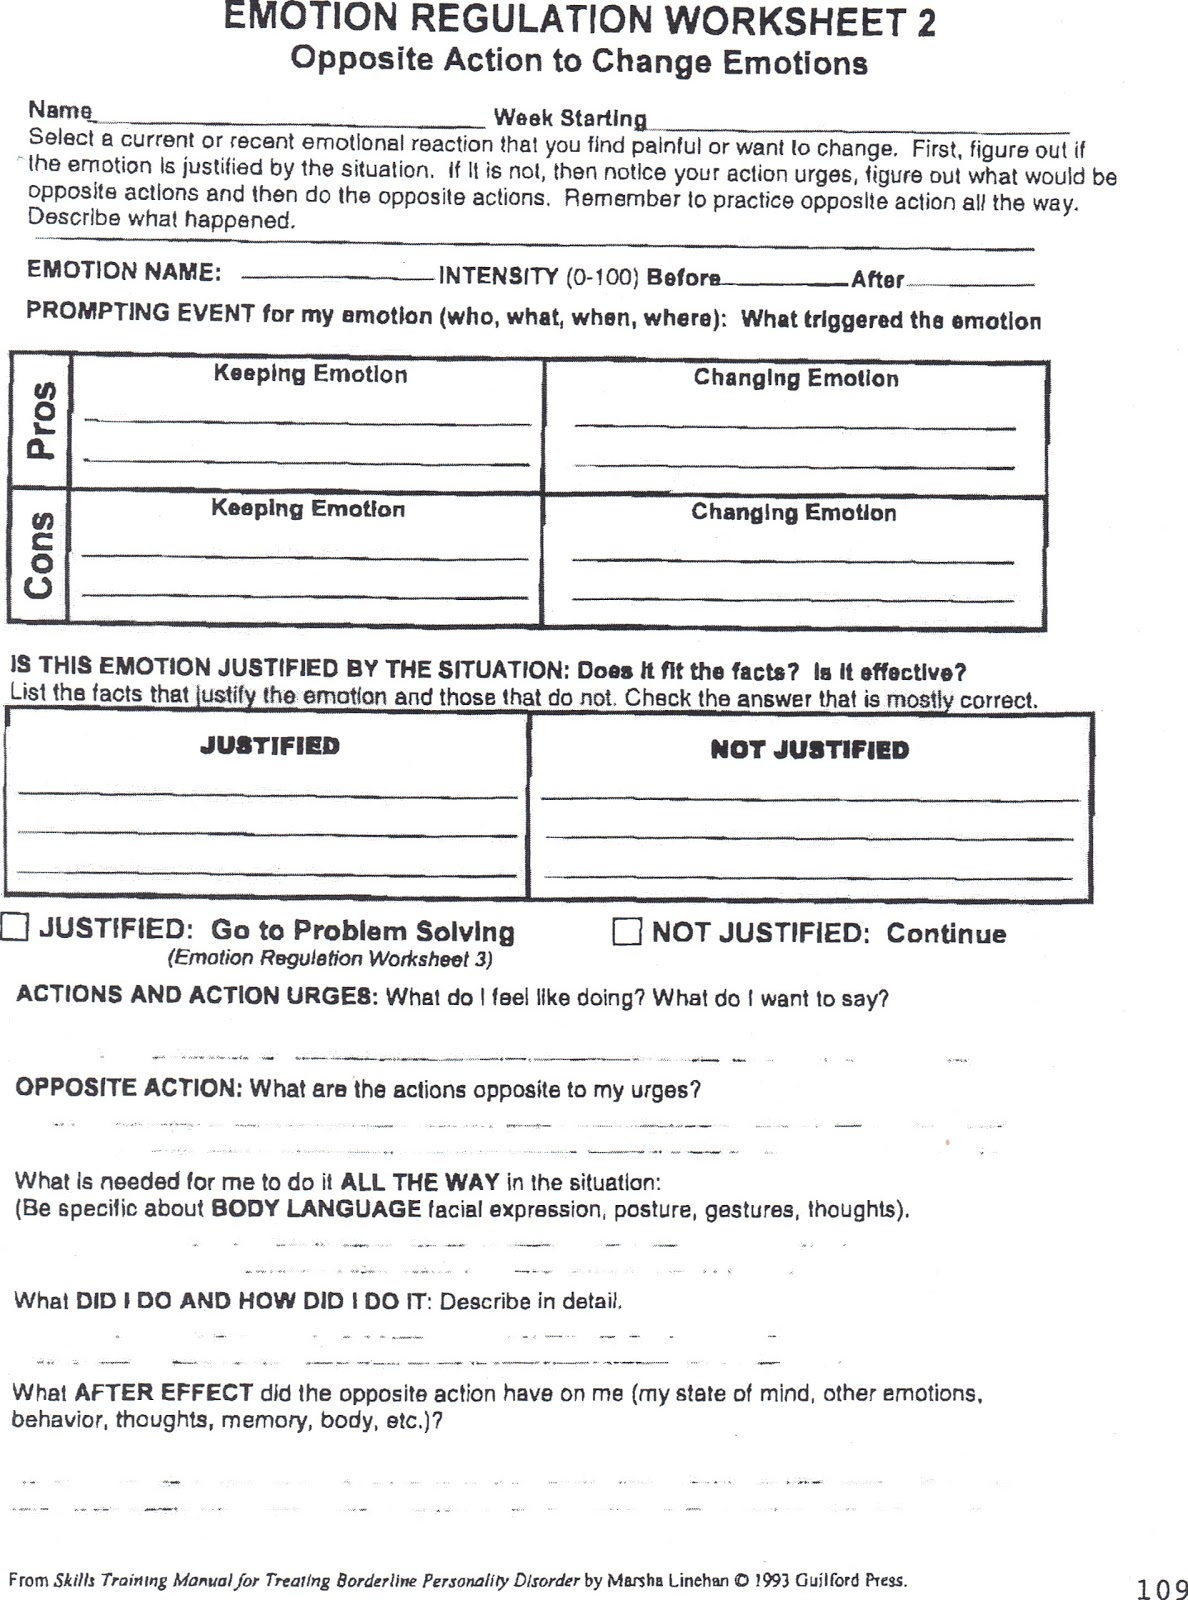 Emotion Regulation Worksheet 2 With Personal Example